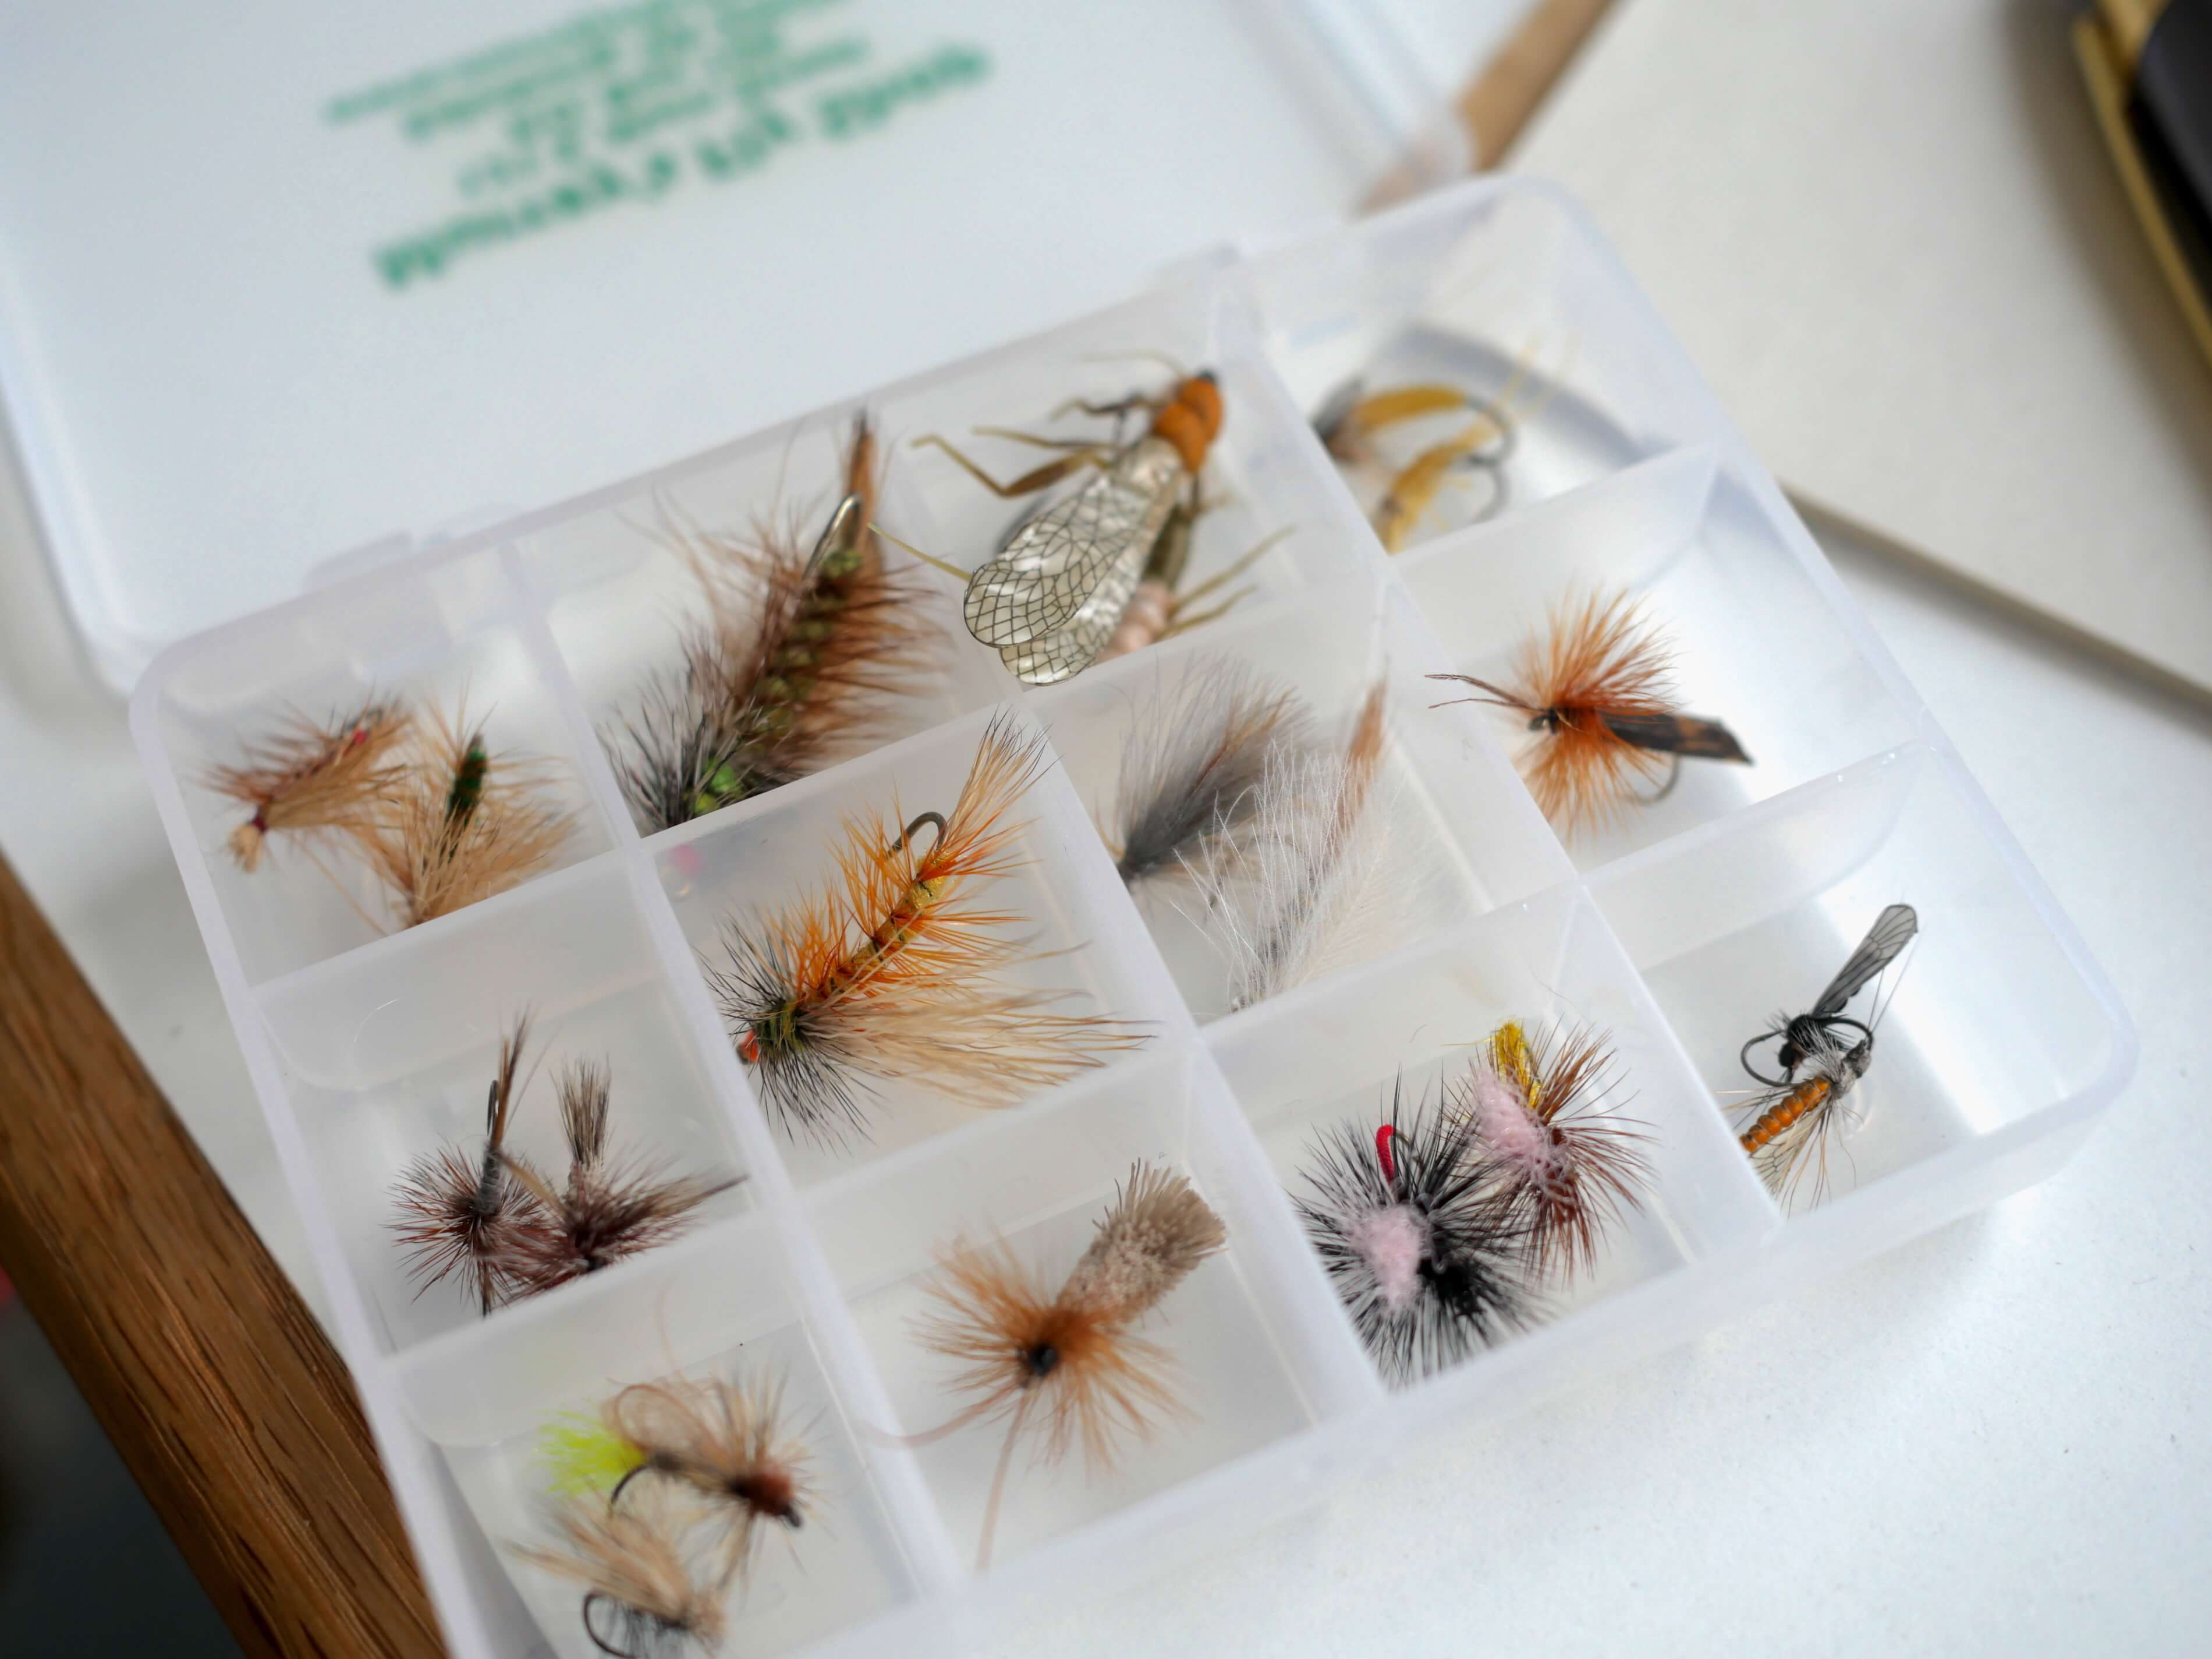 Dry Fly Box with Flies